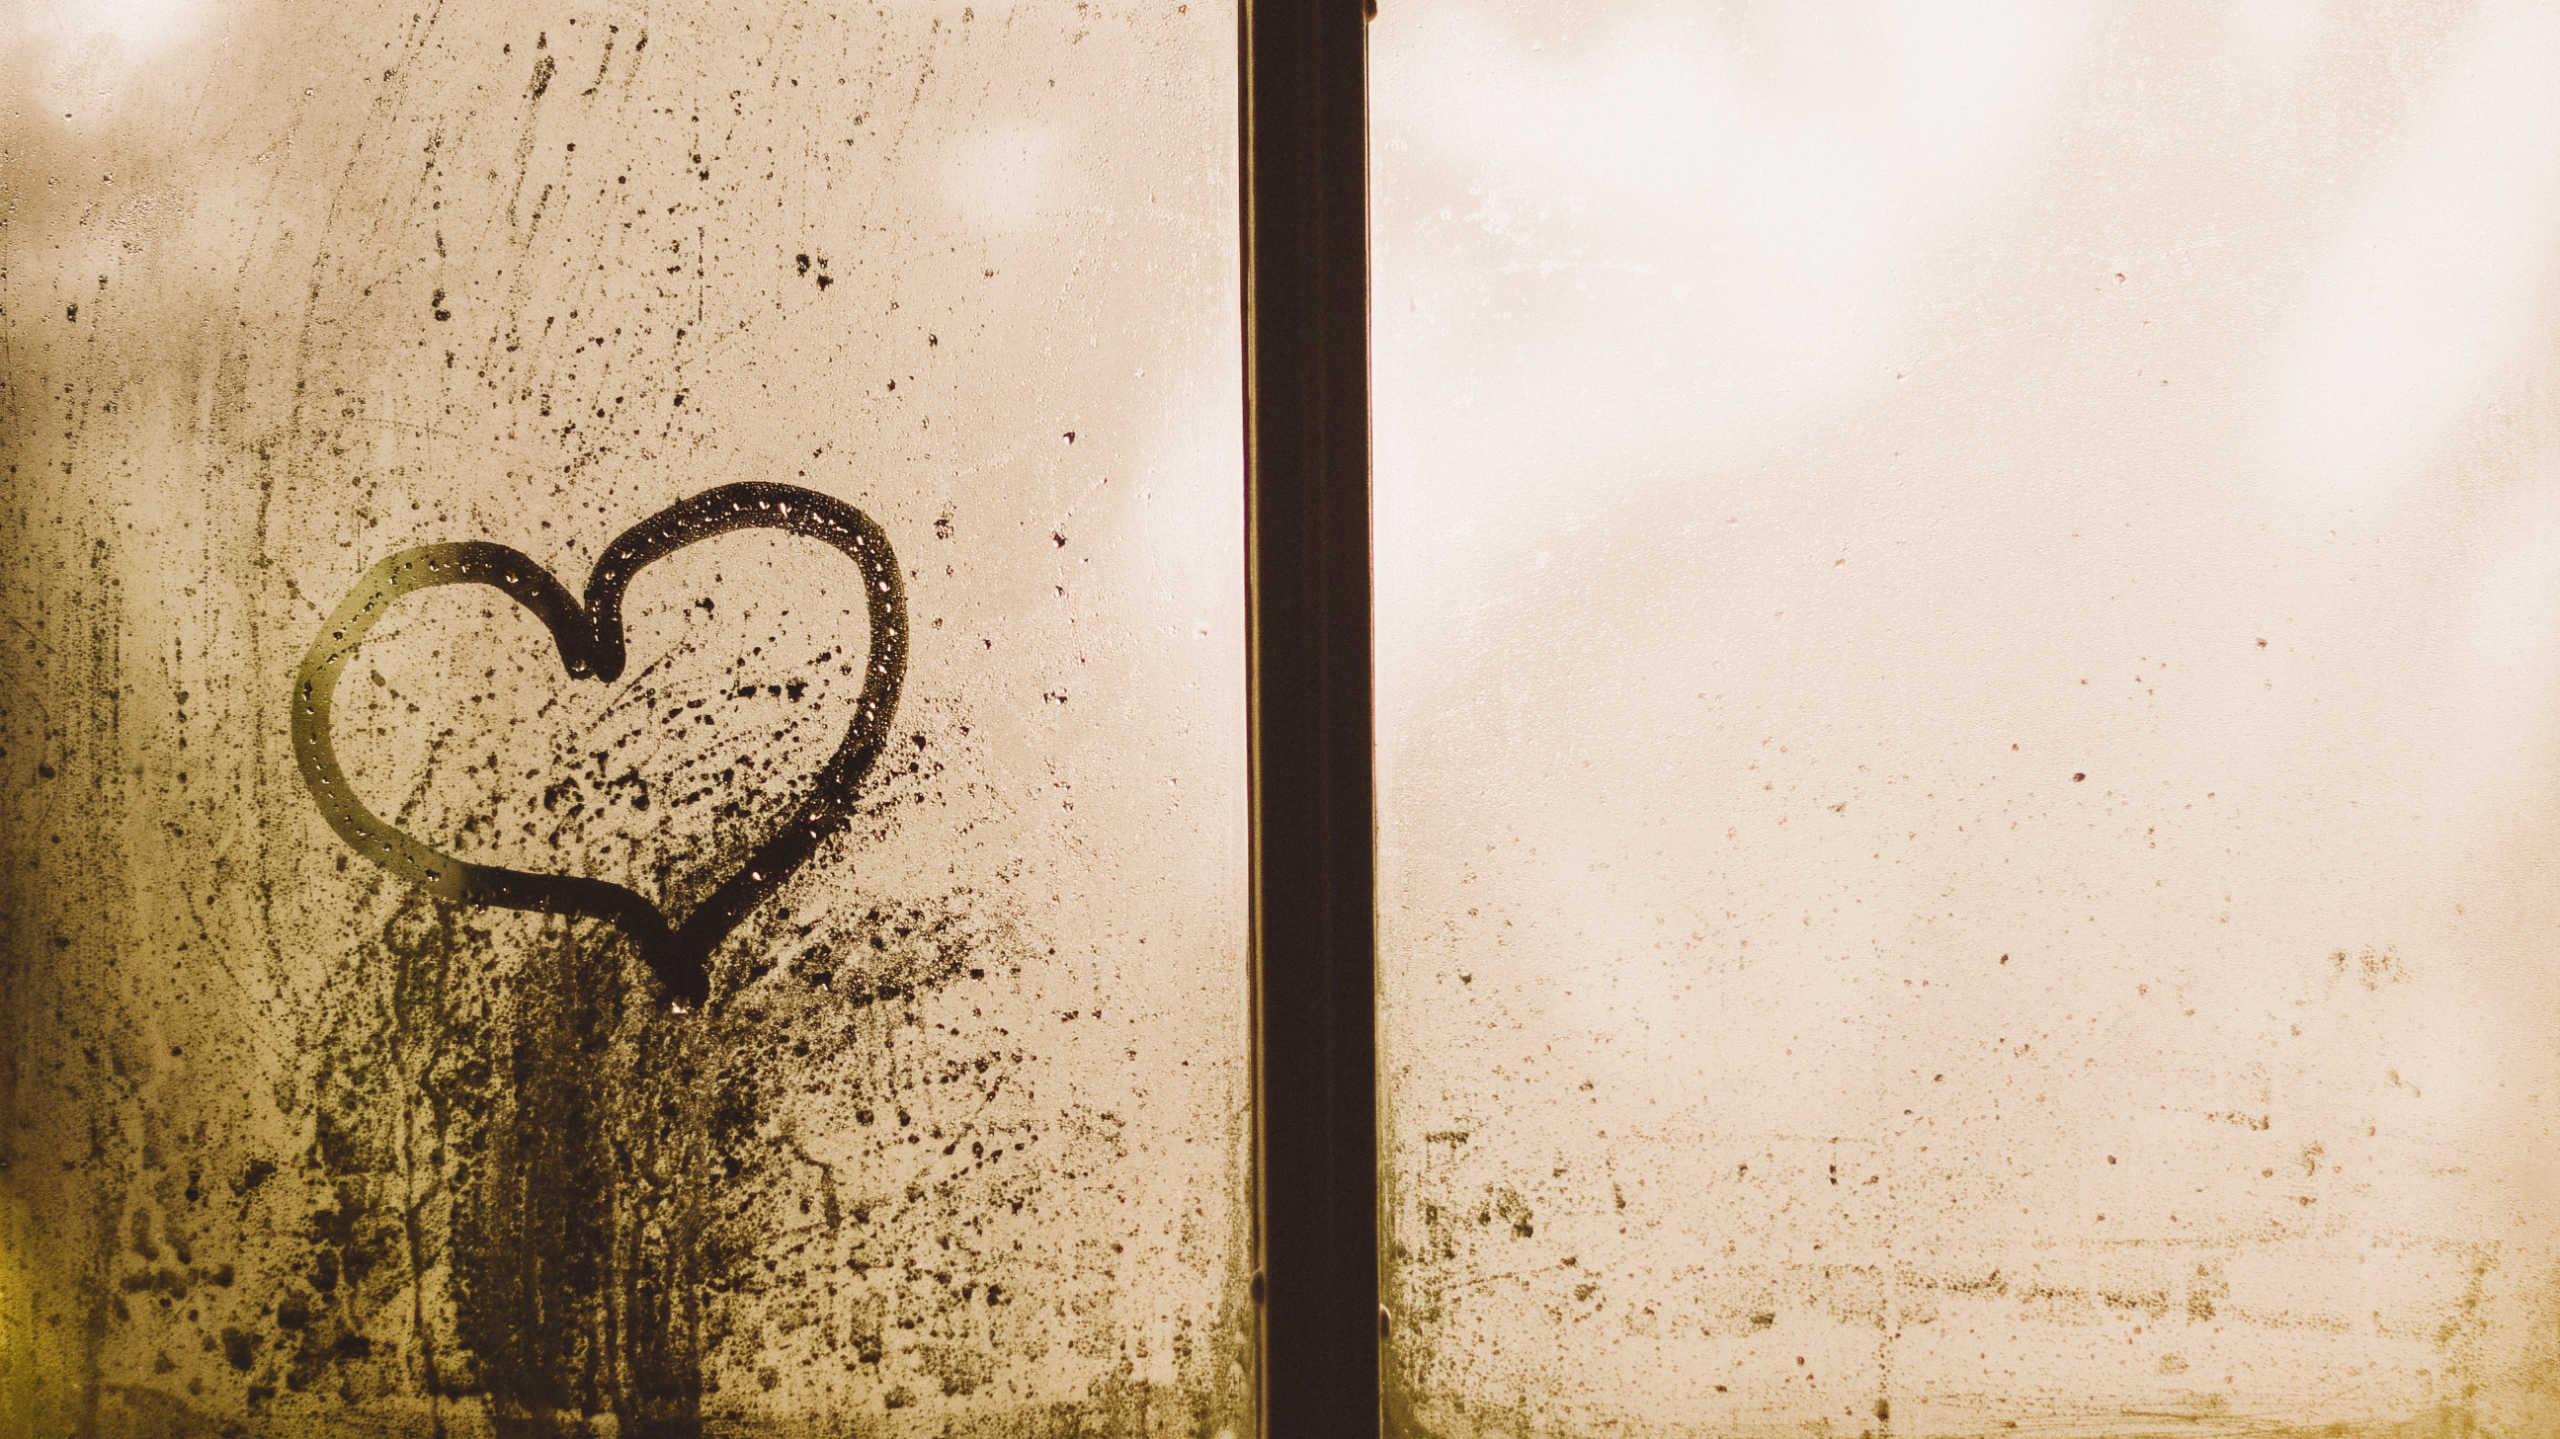 A heart drawn on a stained window pane.